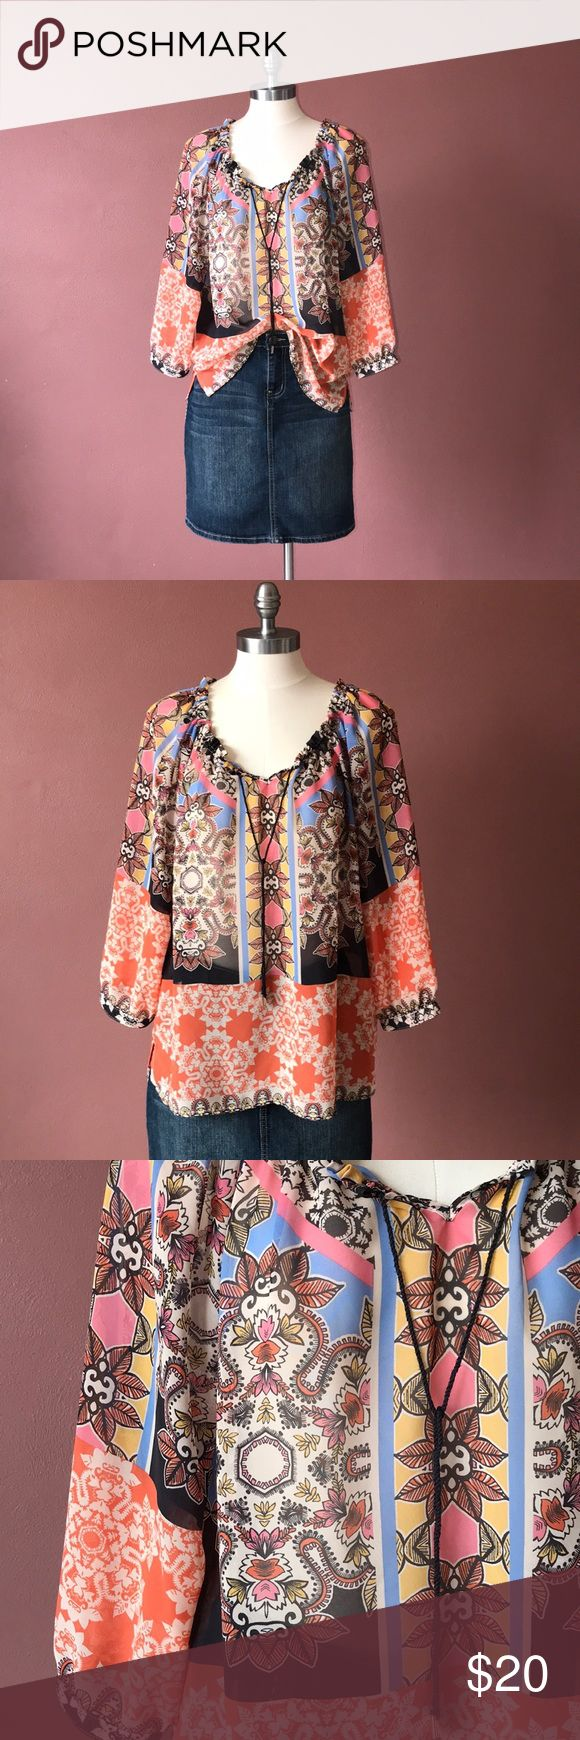 Democracy blouse Size large, great condition, the strings aren't in the best shape, but that's not really noticeable. Adorable patterns! democracy Tops Blouses